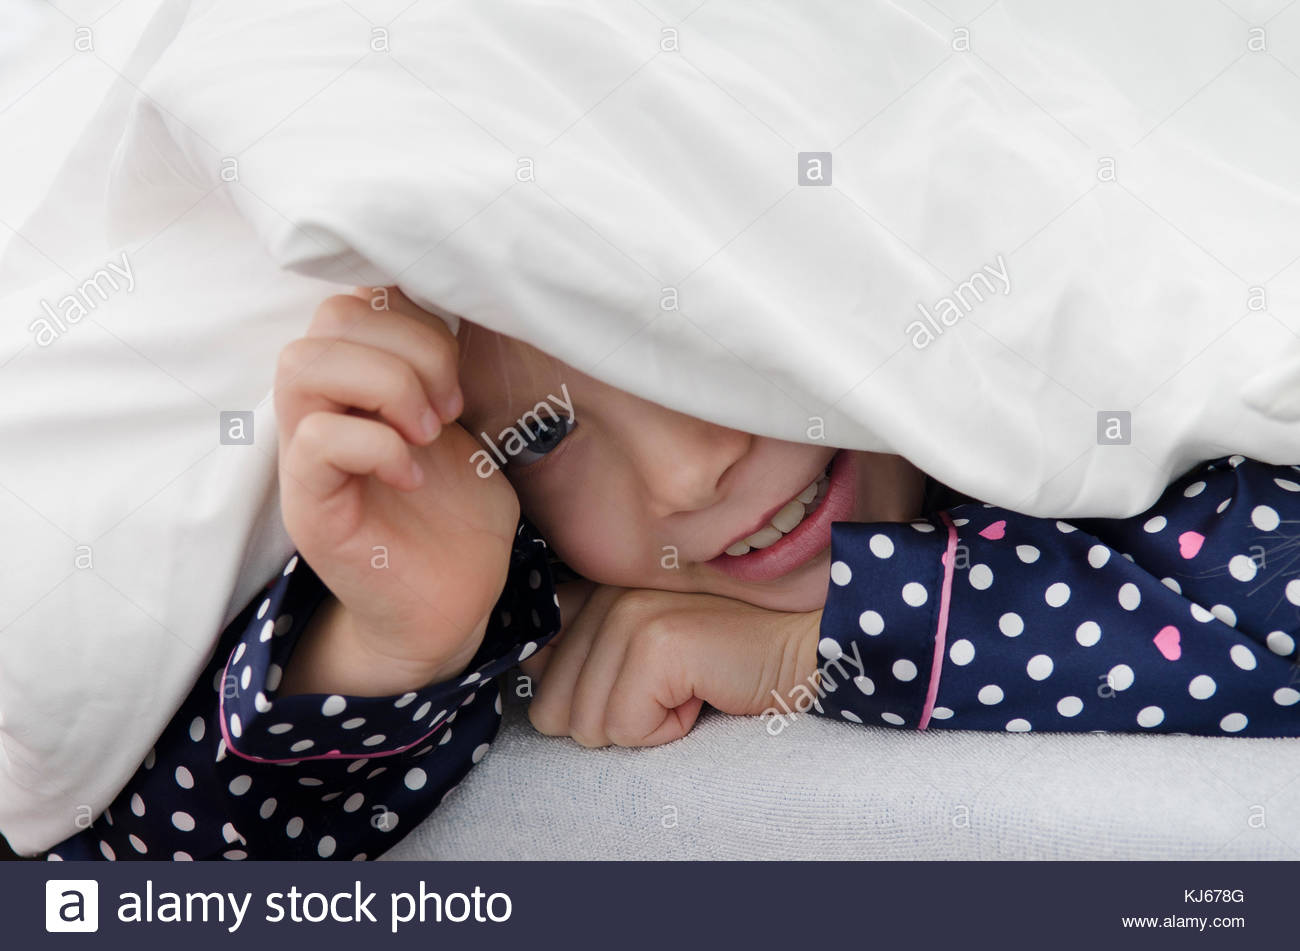 Play hide and seek - Stock Image